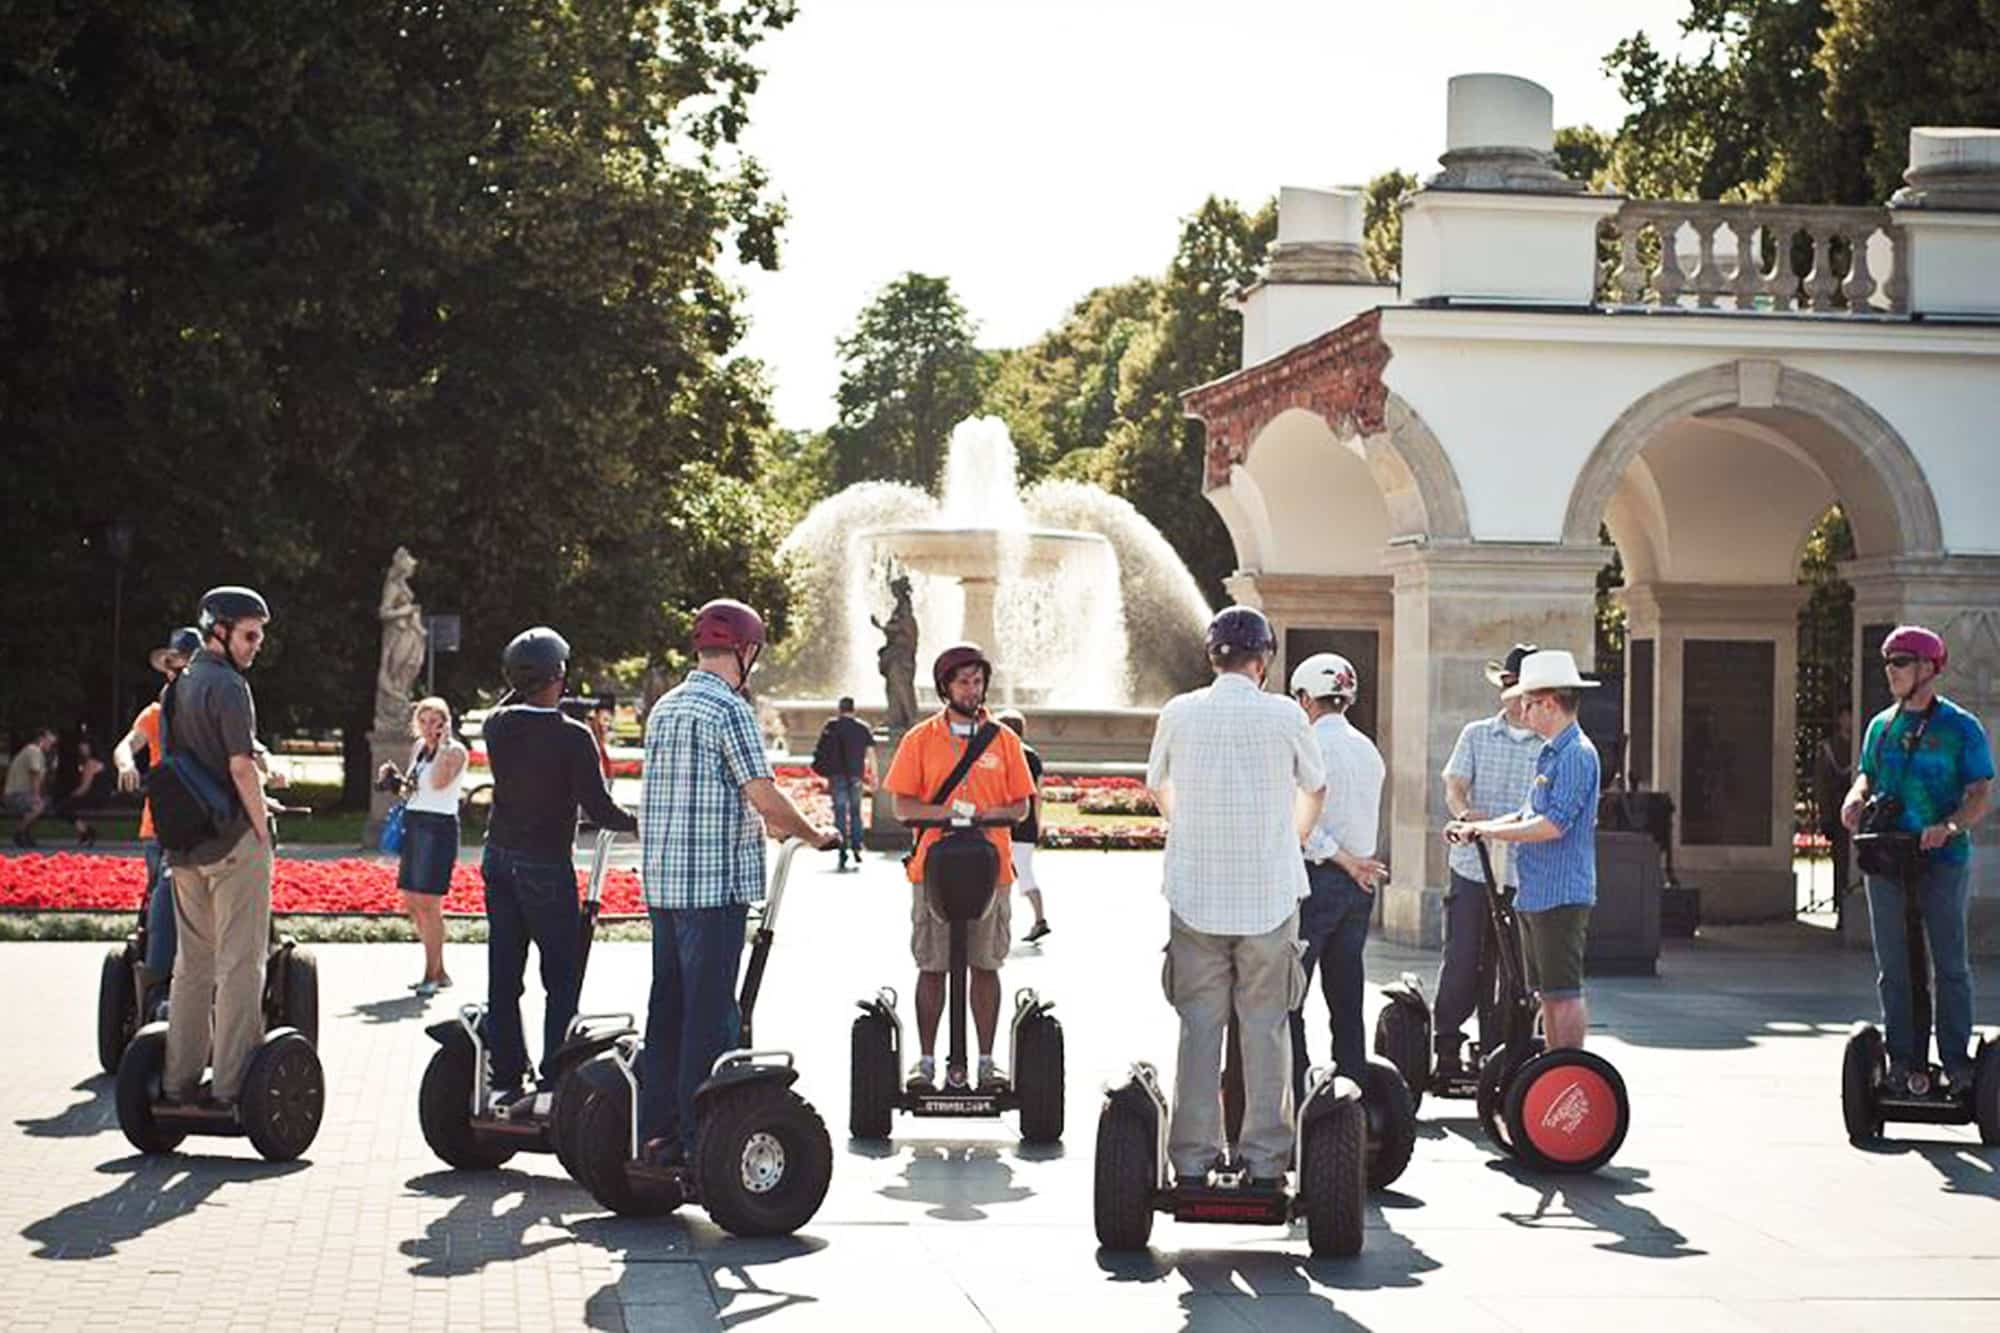 Segway Tour in Warsaw at Pilsudskiego Square